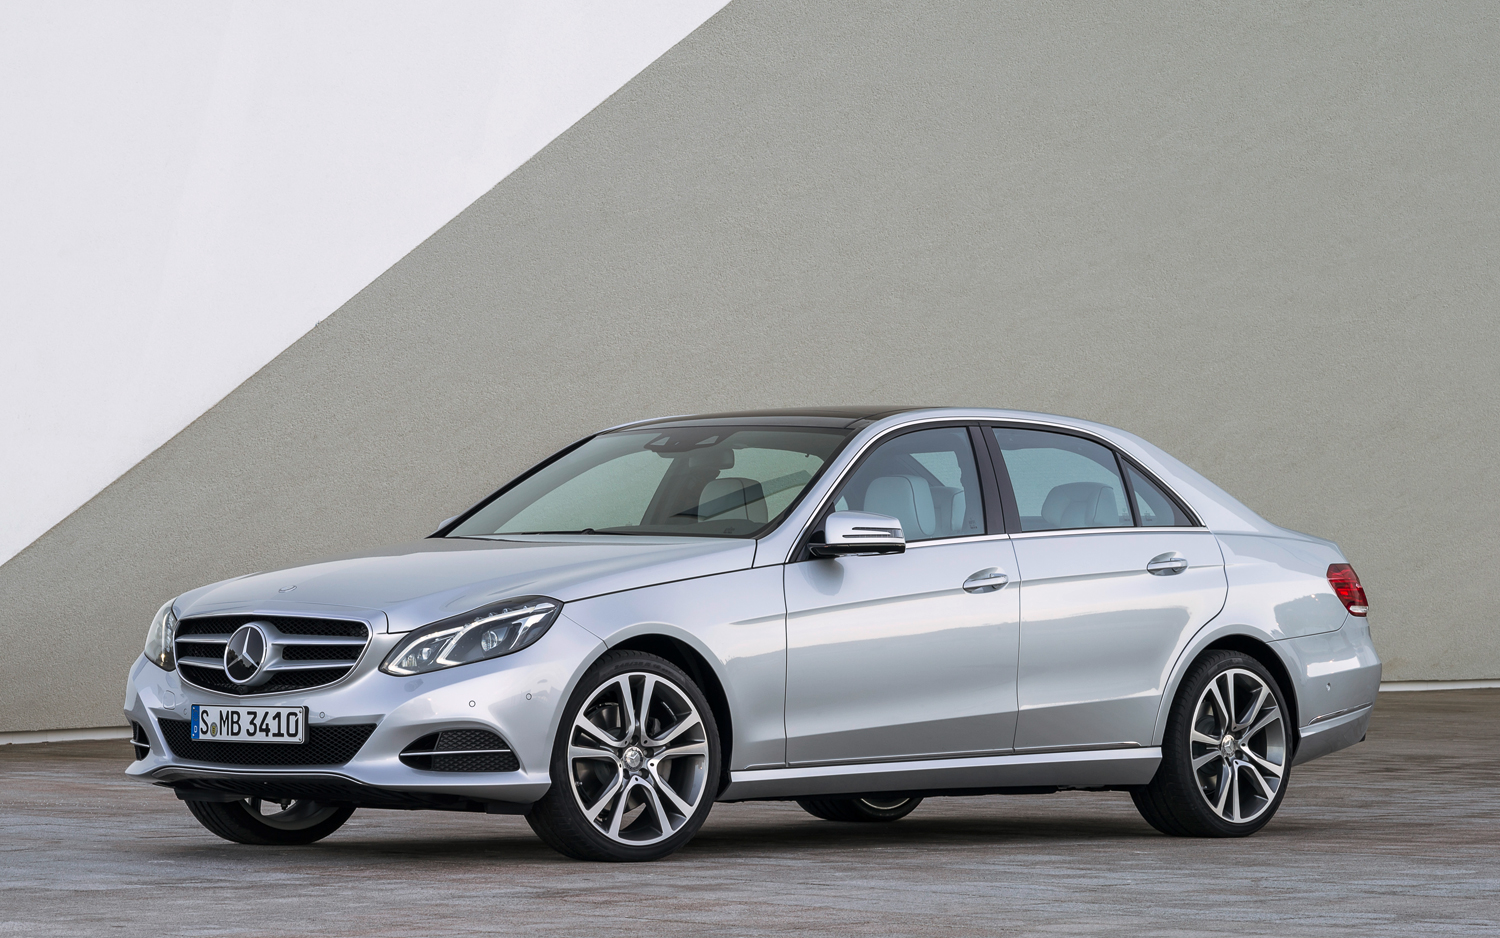 Mercedes E Class 2015 Will Receive Flagman Design New